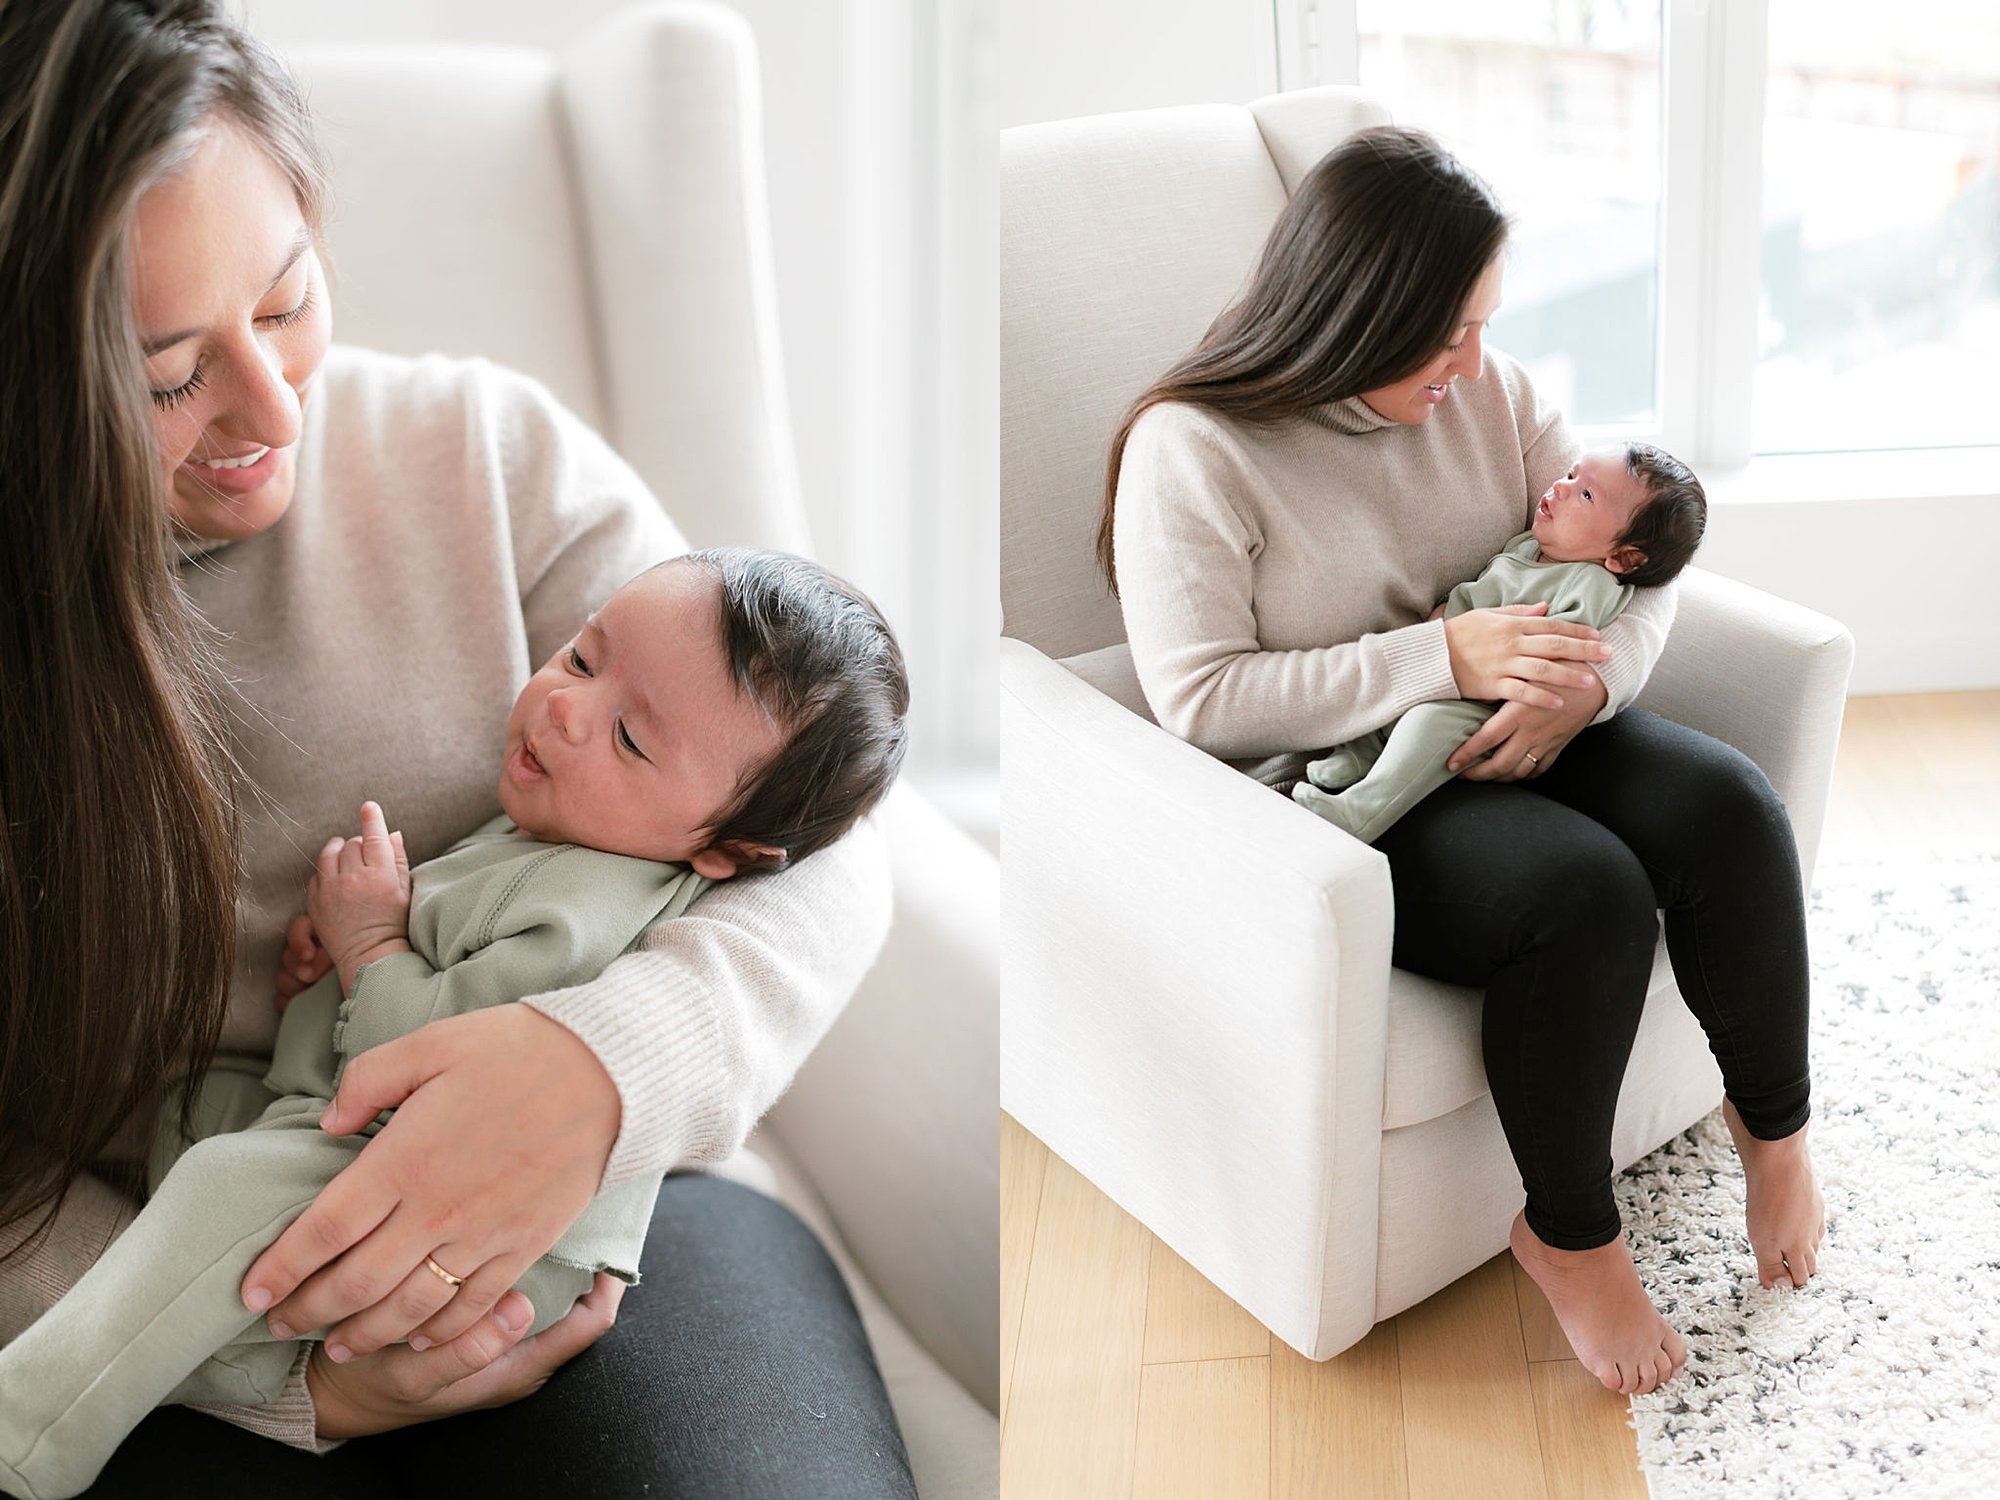 Lifestyle Home Newborn Session Family Portraits NYC by Magdalena Studios11